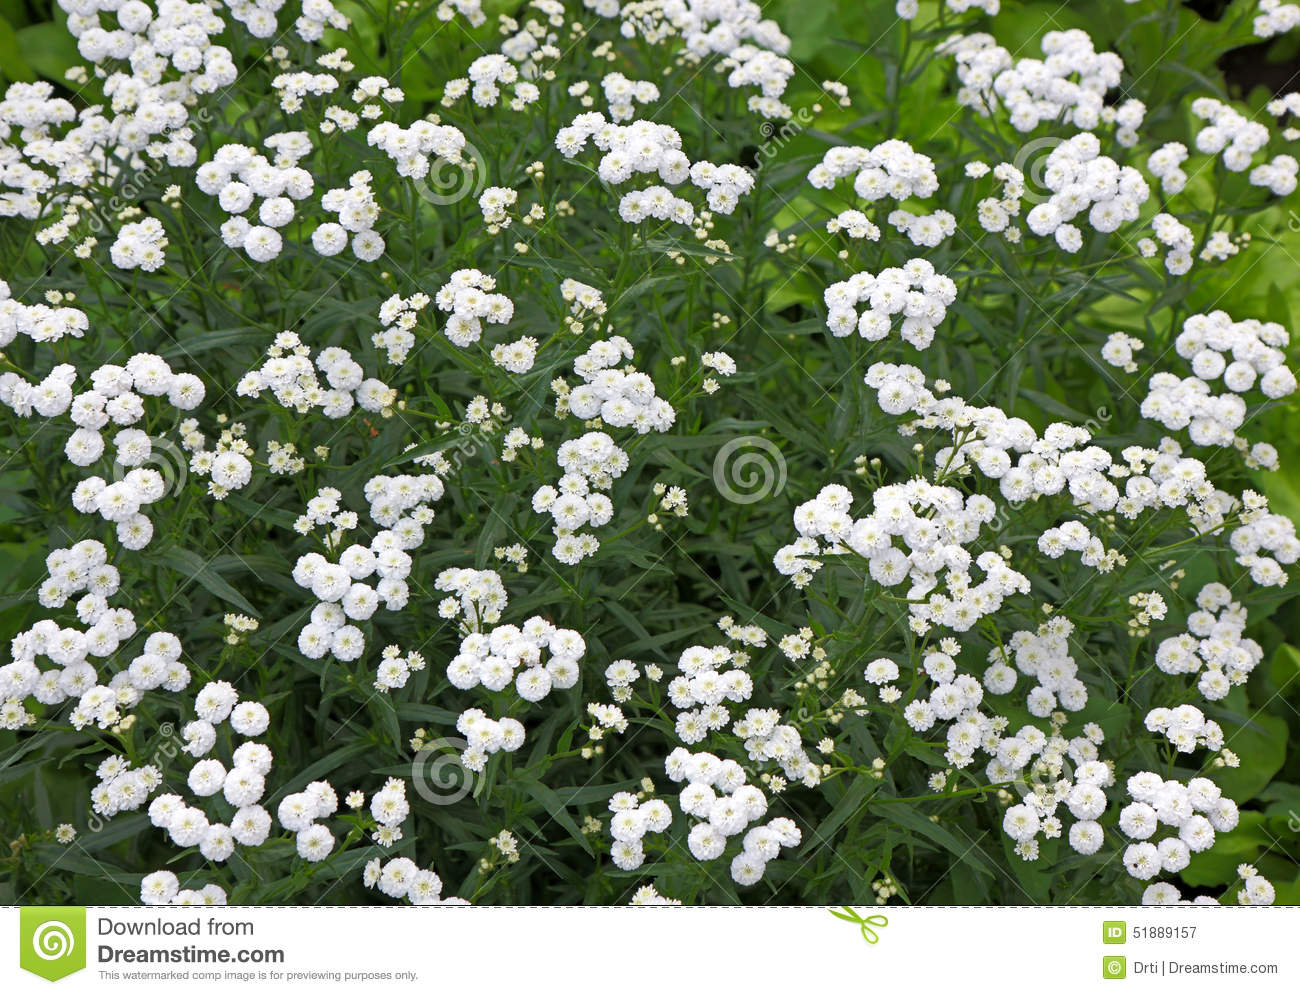 Small white perennial bush flowers stock image image of bush herb download comp izmirmasajfo